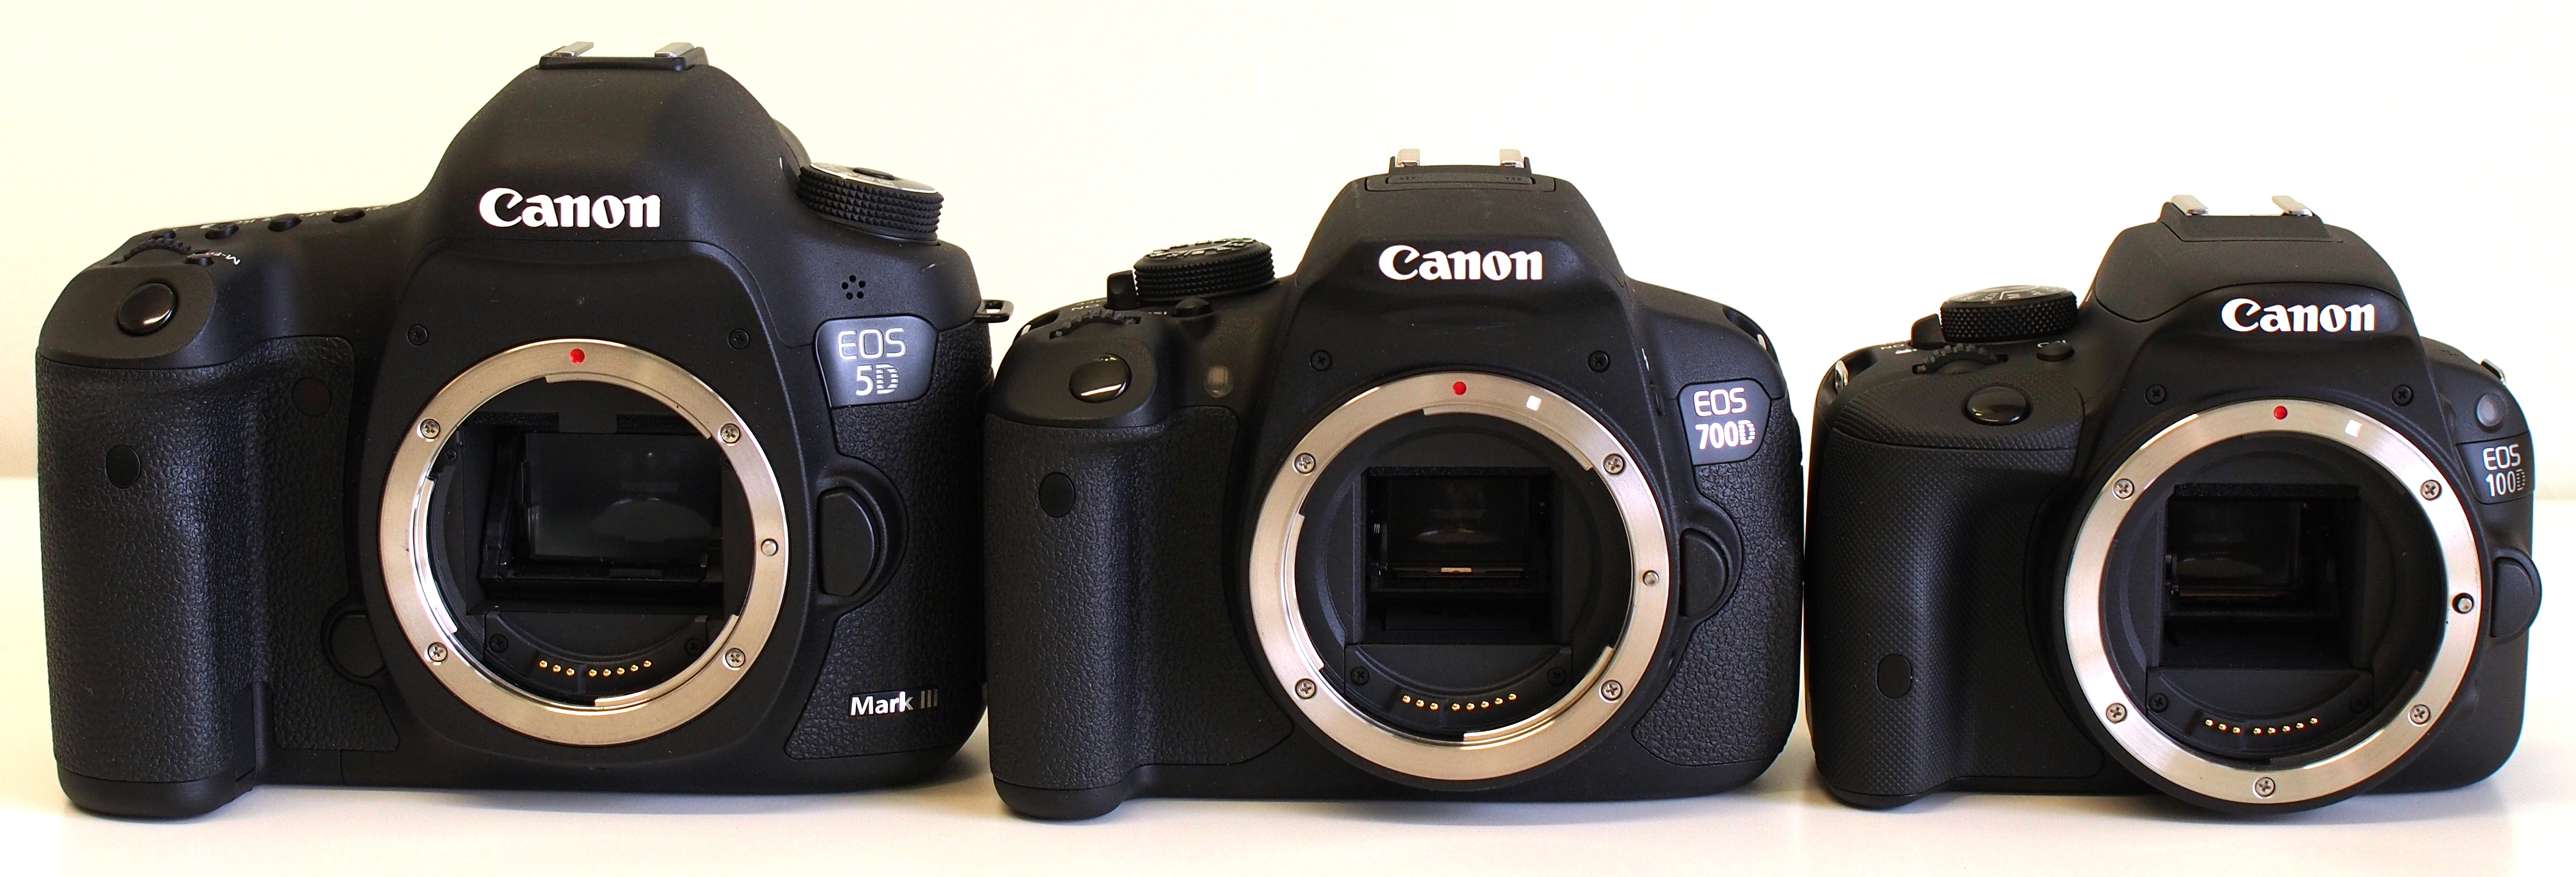 Canon EOS 100D Vs 700D DSLR Comparison